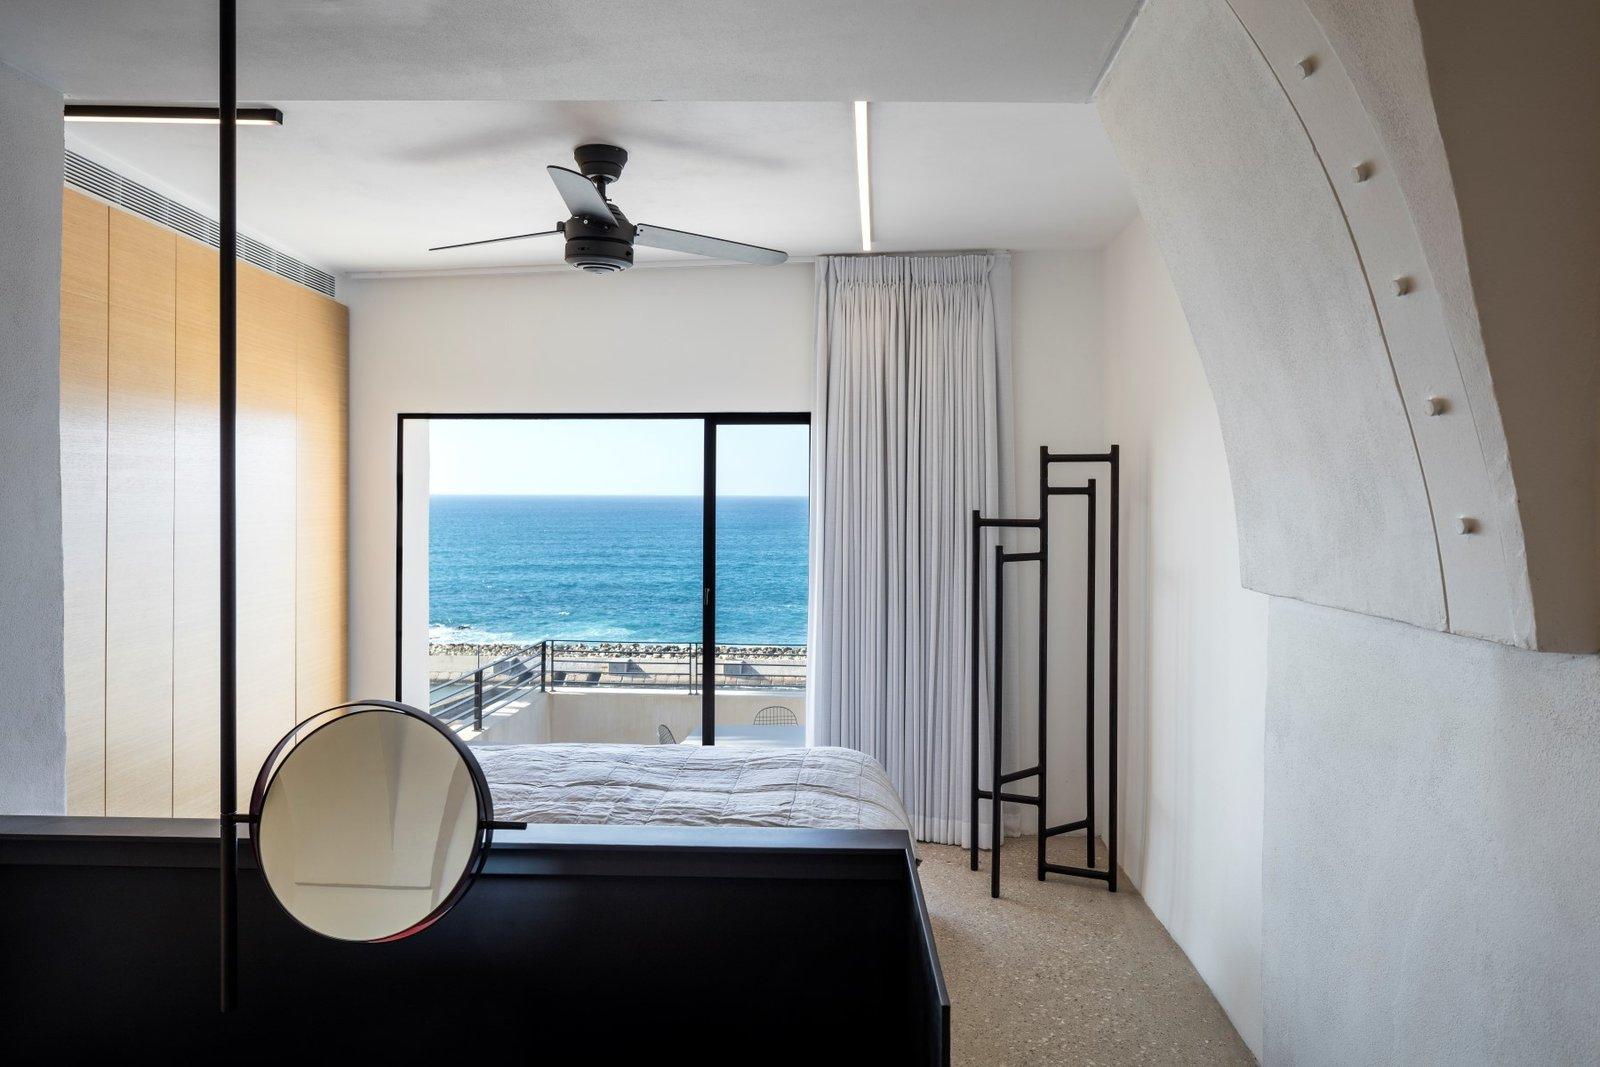 Bedroom, Bed, and Terrazzo  Best Bedroom Terrazzo Bed Photos from Old Jaffa House